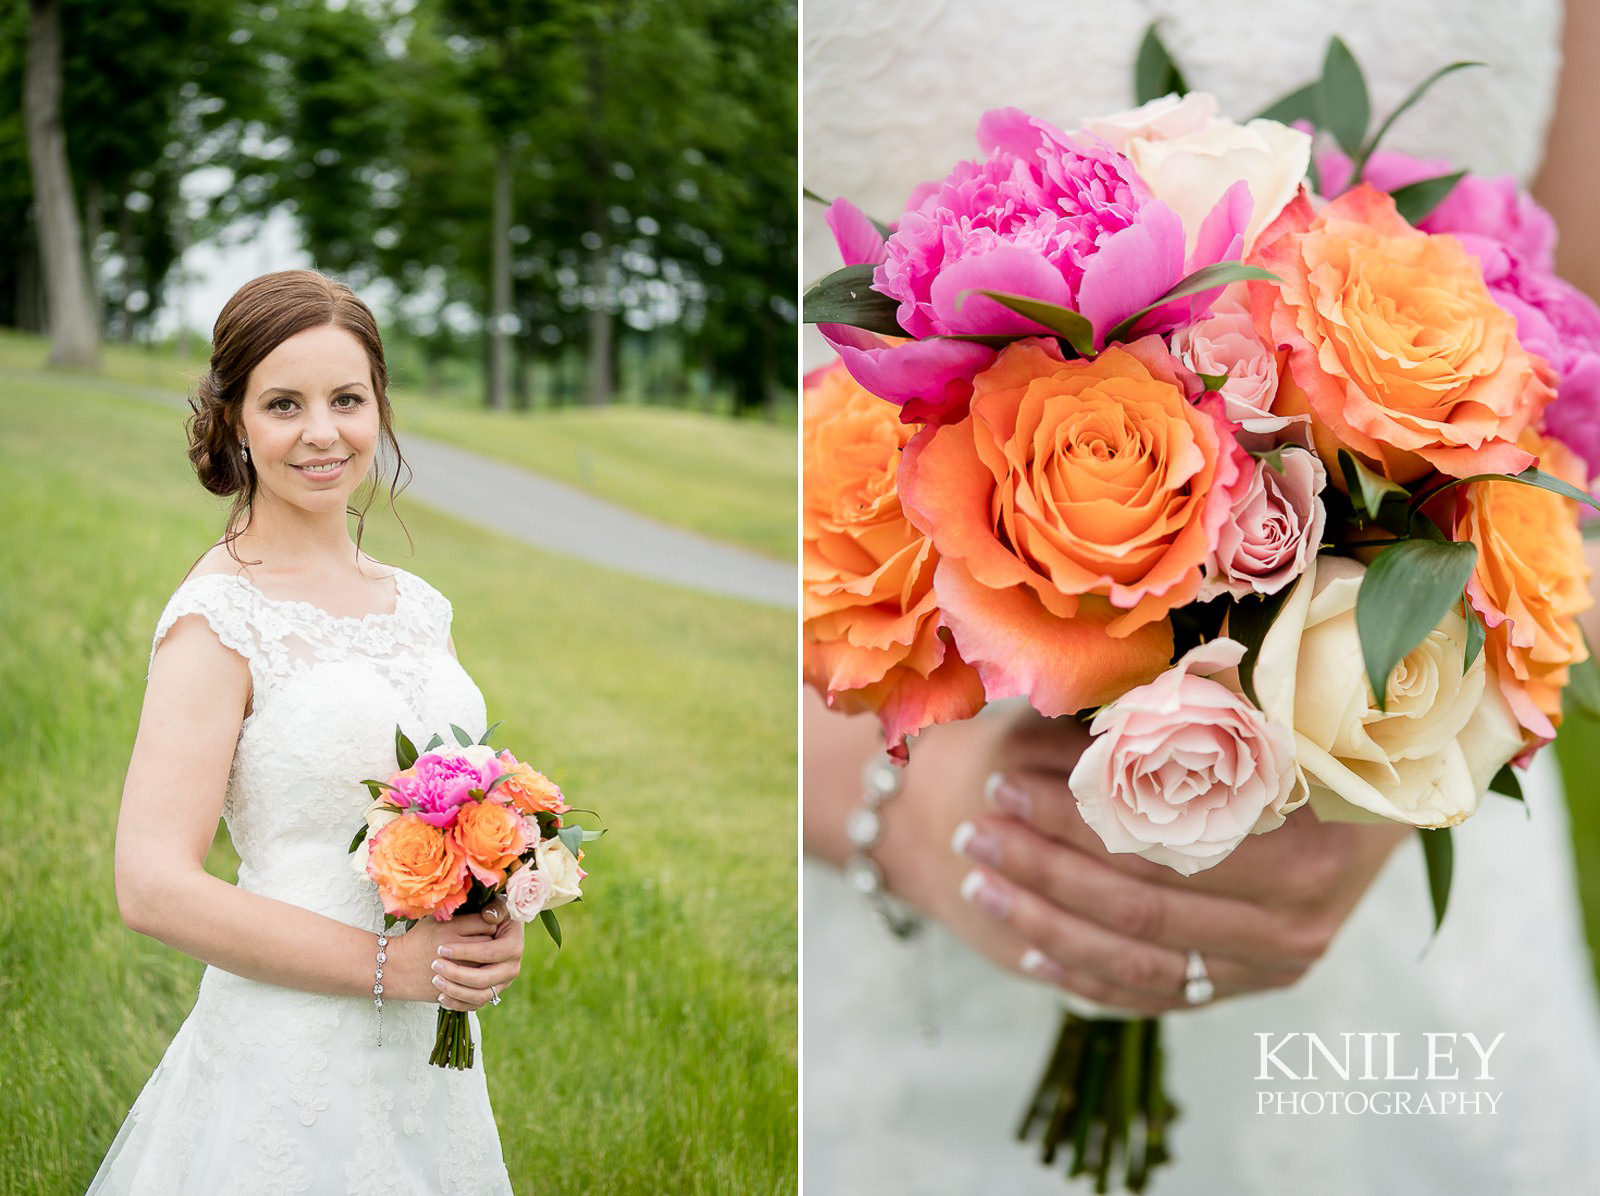 Ravenwood Golf Club wedding pictures - Rochester NY - Kniley Photography - Collage 4.jpg